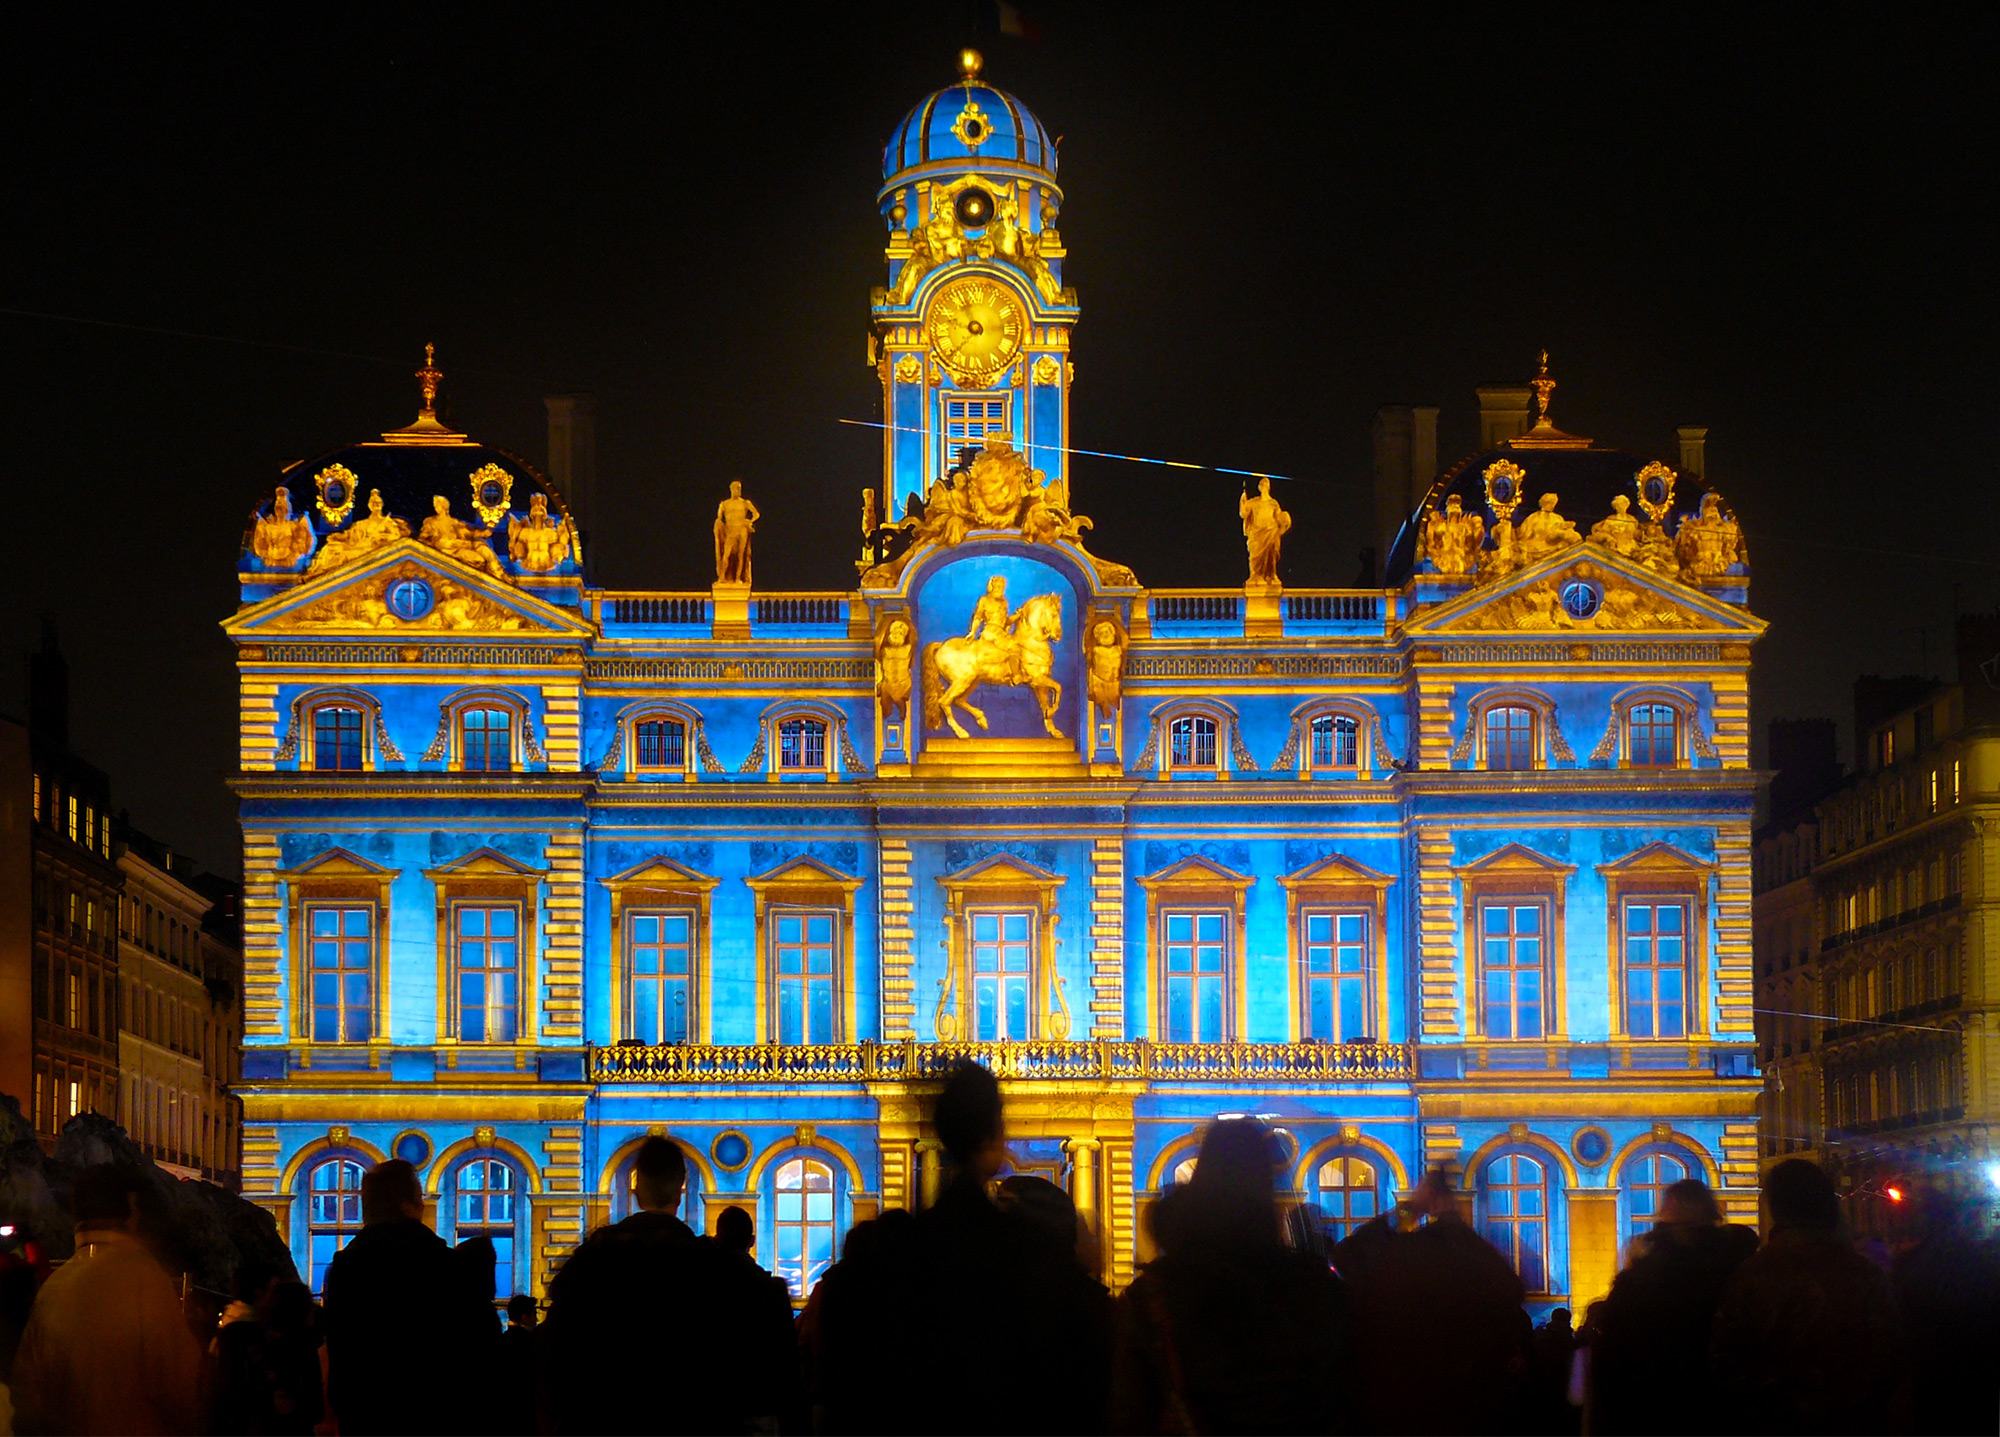 Stay at Lyon with University Rooms and witness the festival of lights